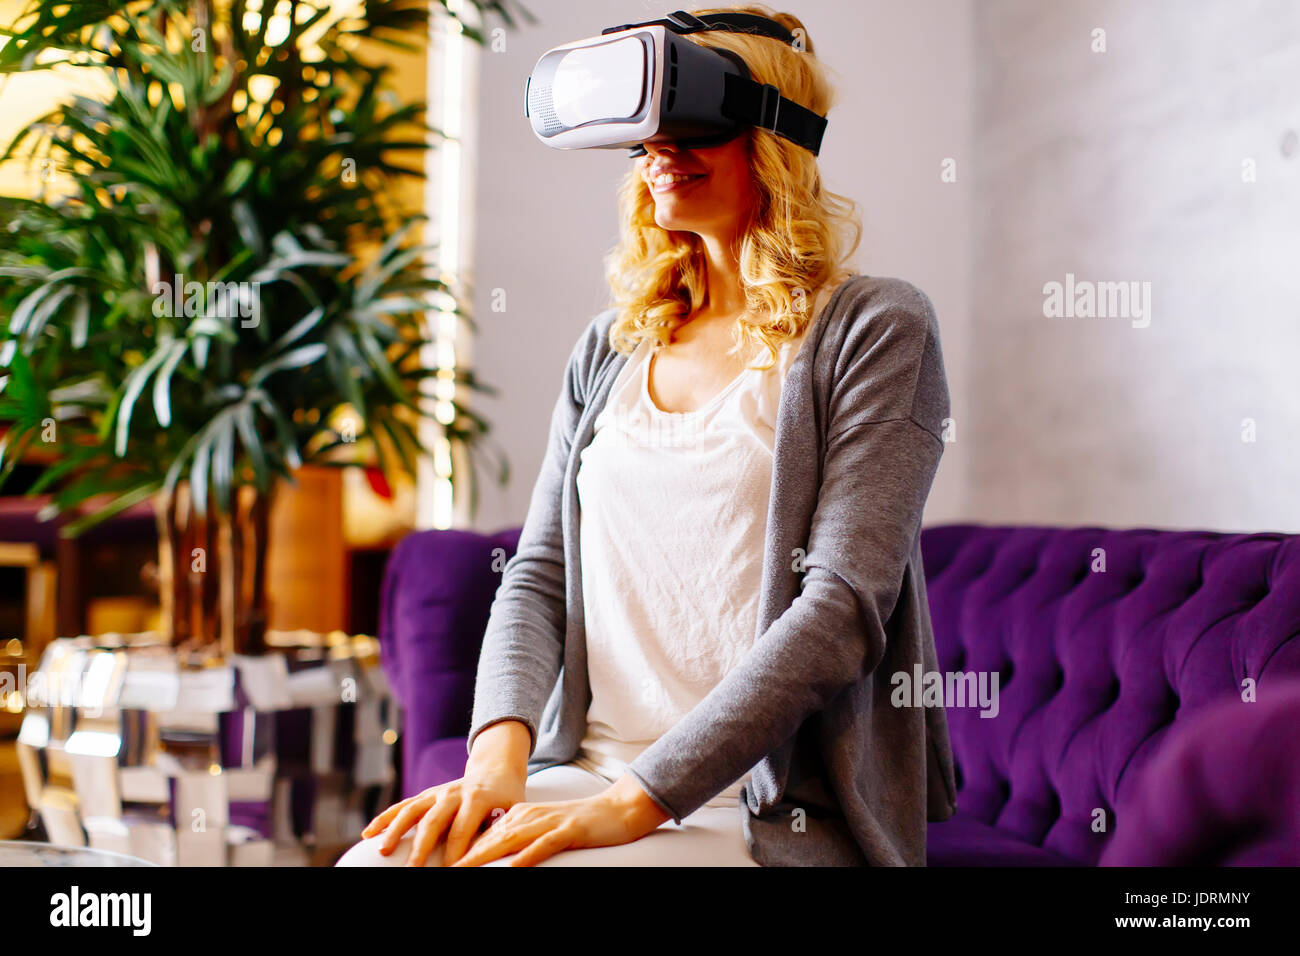 Attractive blond woman wearing headset  virtual reality vision goggles and watching video - Stock Image